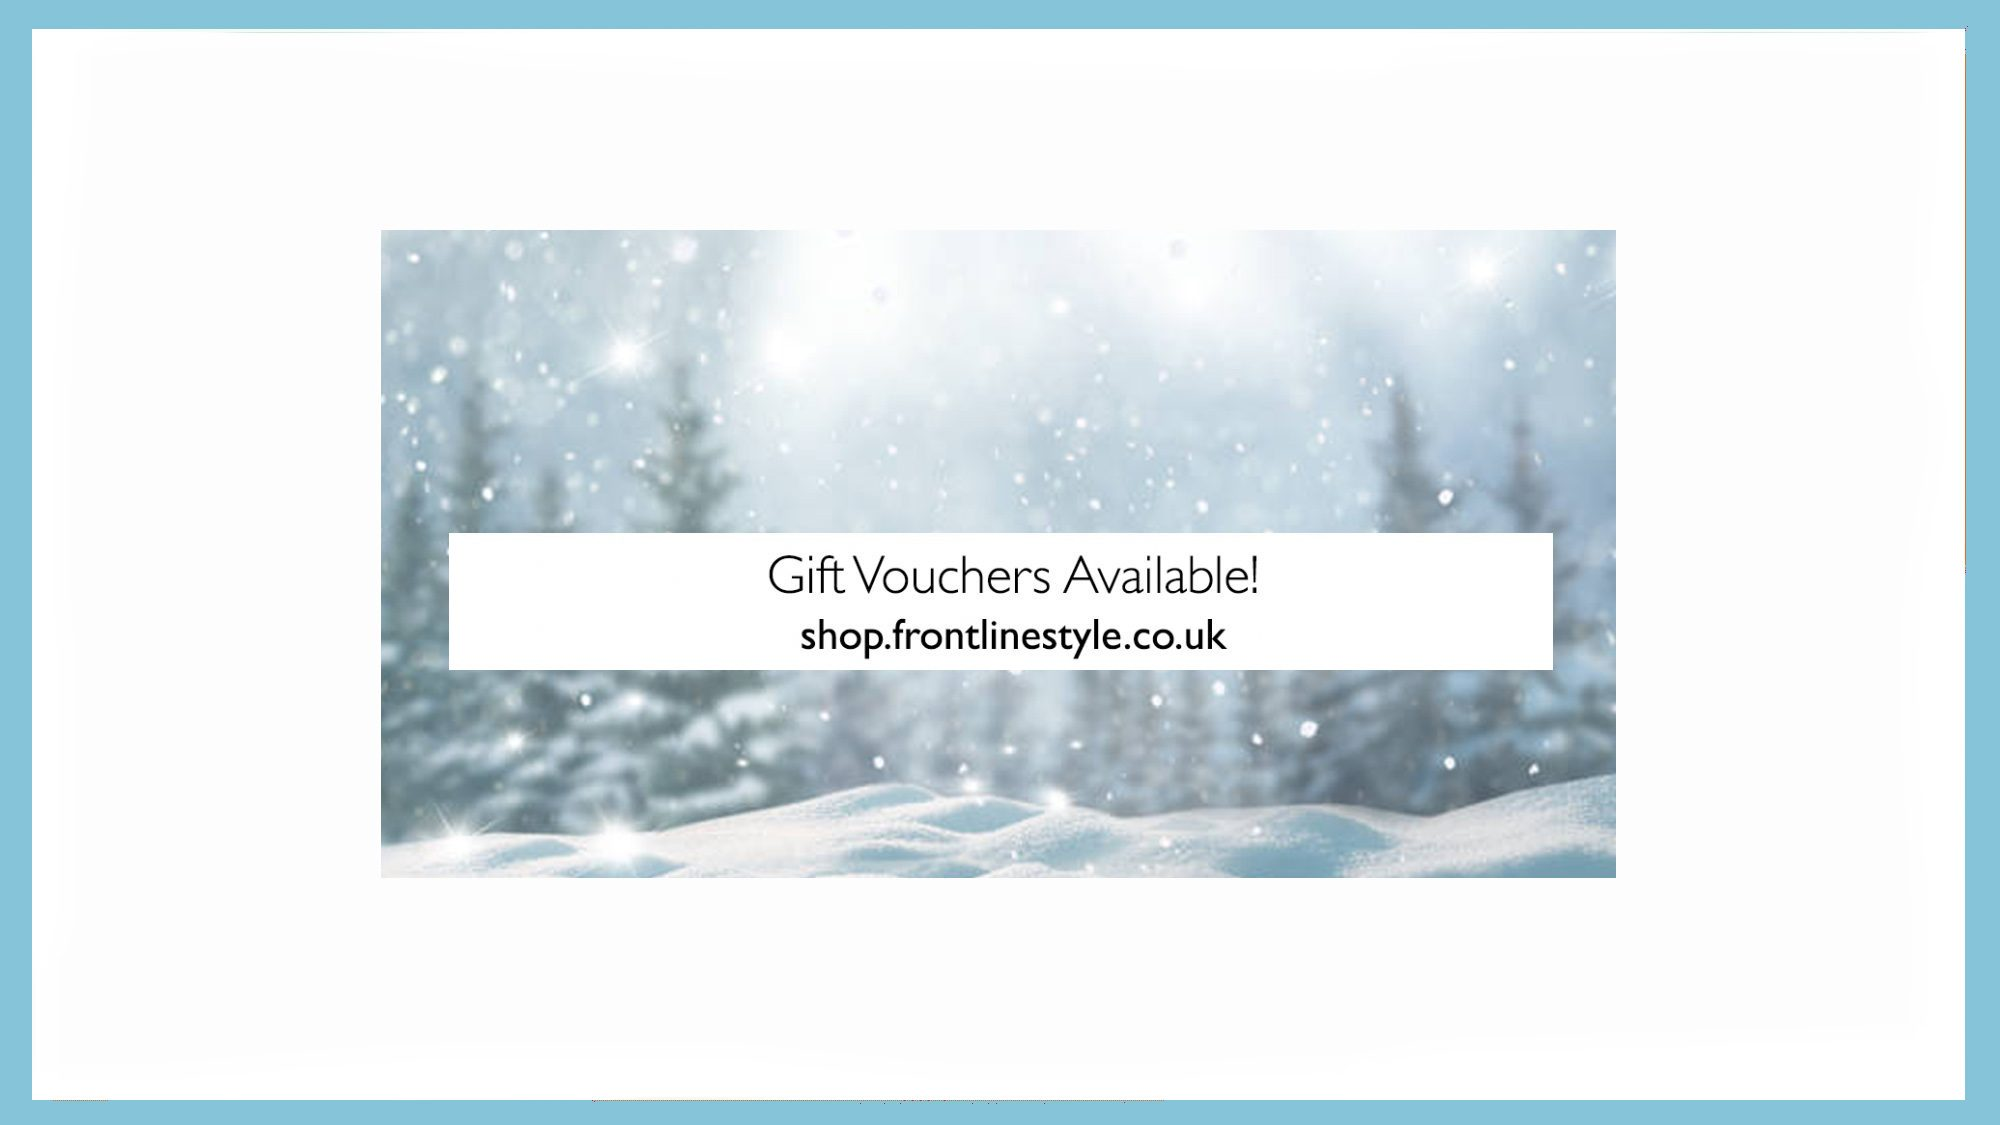 Frontlinestyle Gift Vouchers Available